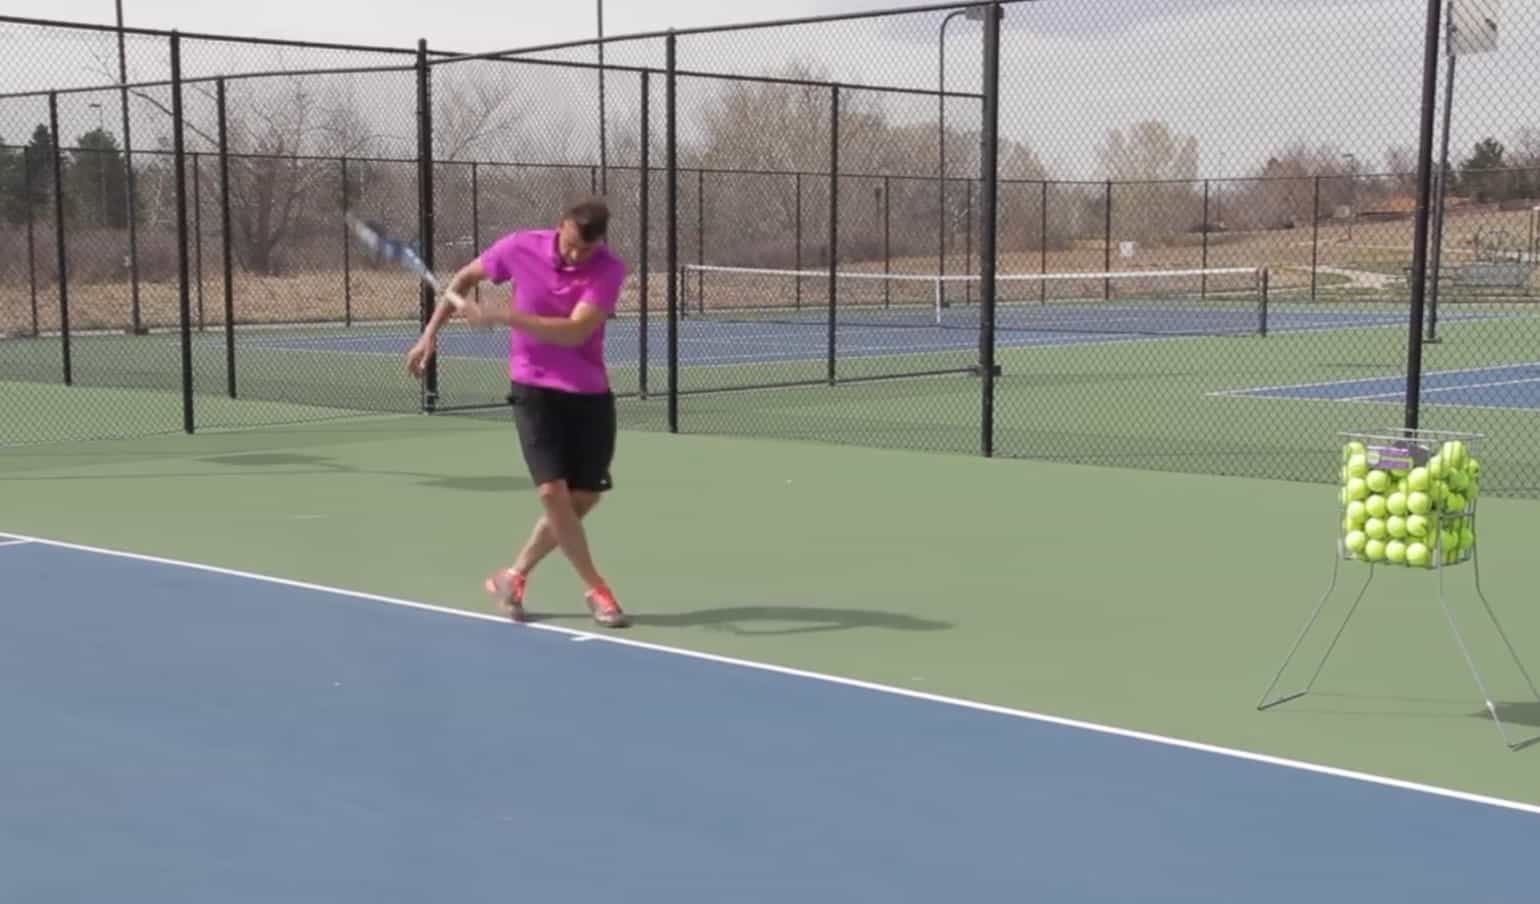 Low Tennis Forehand On The Middle Of The Court